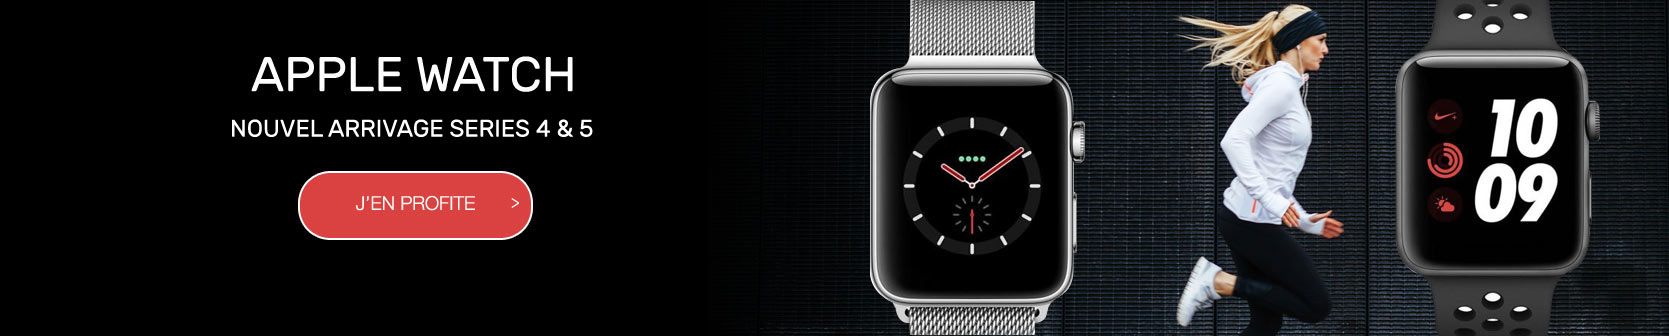 Apple Watch arrivage